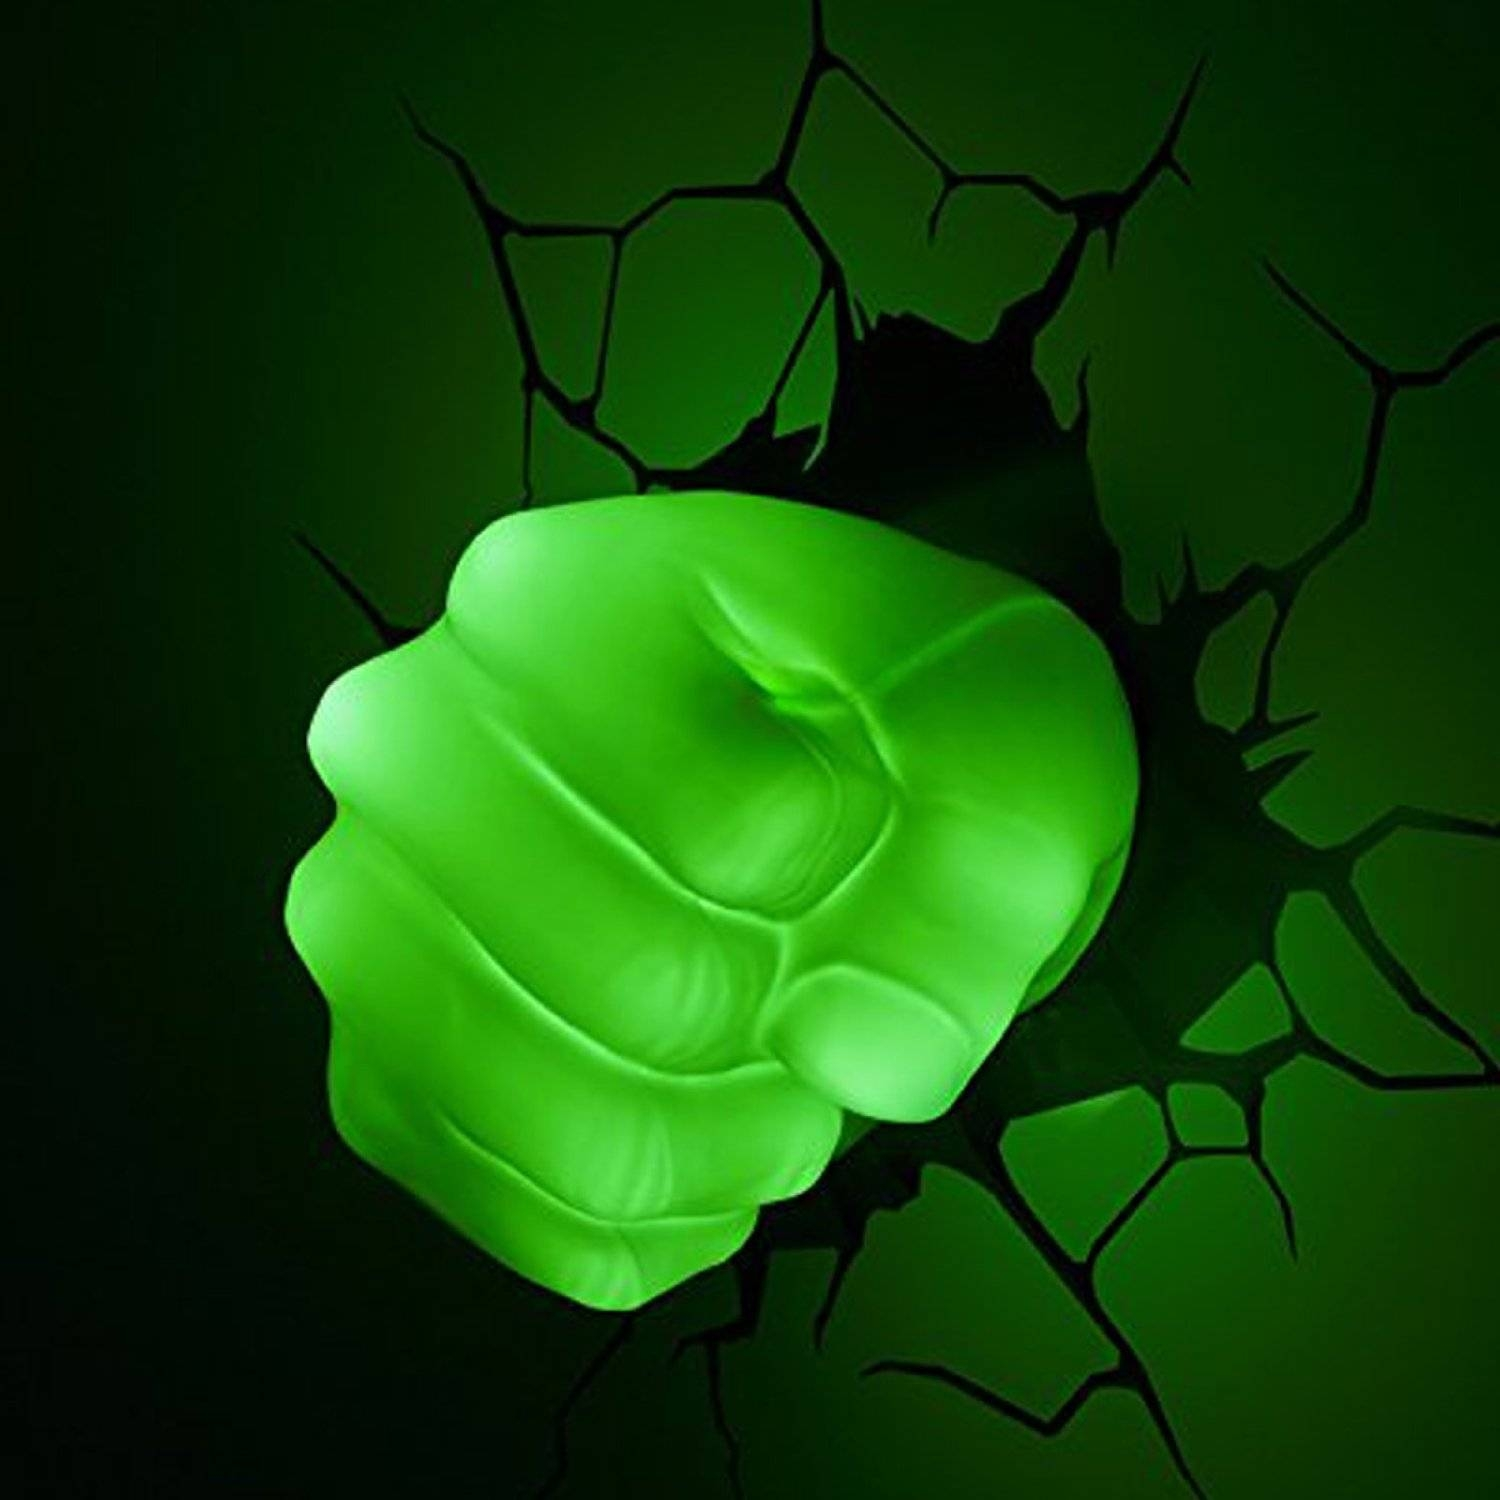 The Avengers 3D Wall Art Nightlight – Hulk Hand | This Stuff Online With Regard To Newest Avengers 3D Wall Art (View 17 of 20)